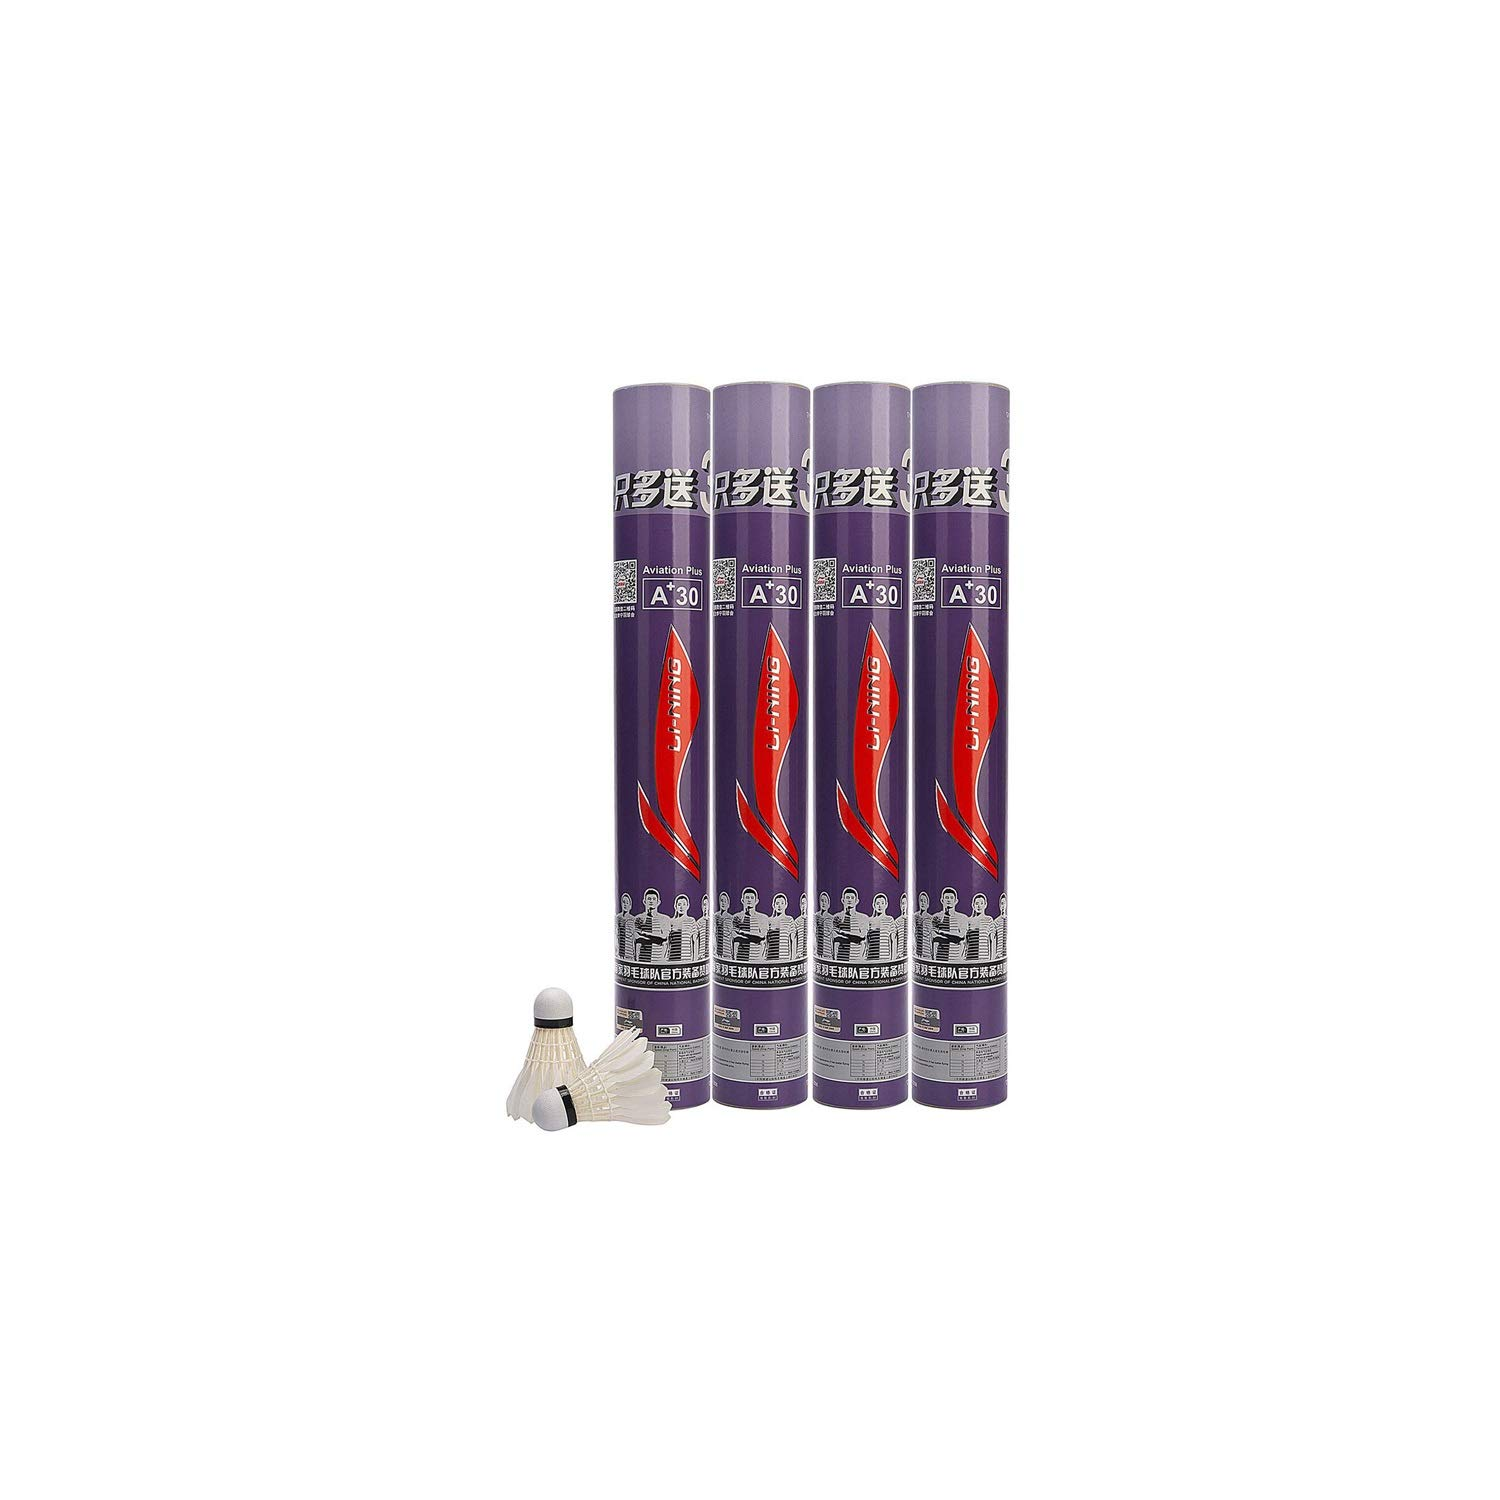 Hengtongtongxun Badminton, 15 / Barrel, Goose Feather, Ball Speed 77, for Training, Competition, Entertainment, etc, 3 Barrels/Piece, 6 Barrels/Piece, 12 Barrels/Piece Badminton